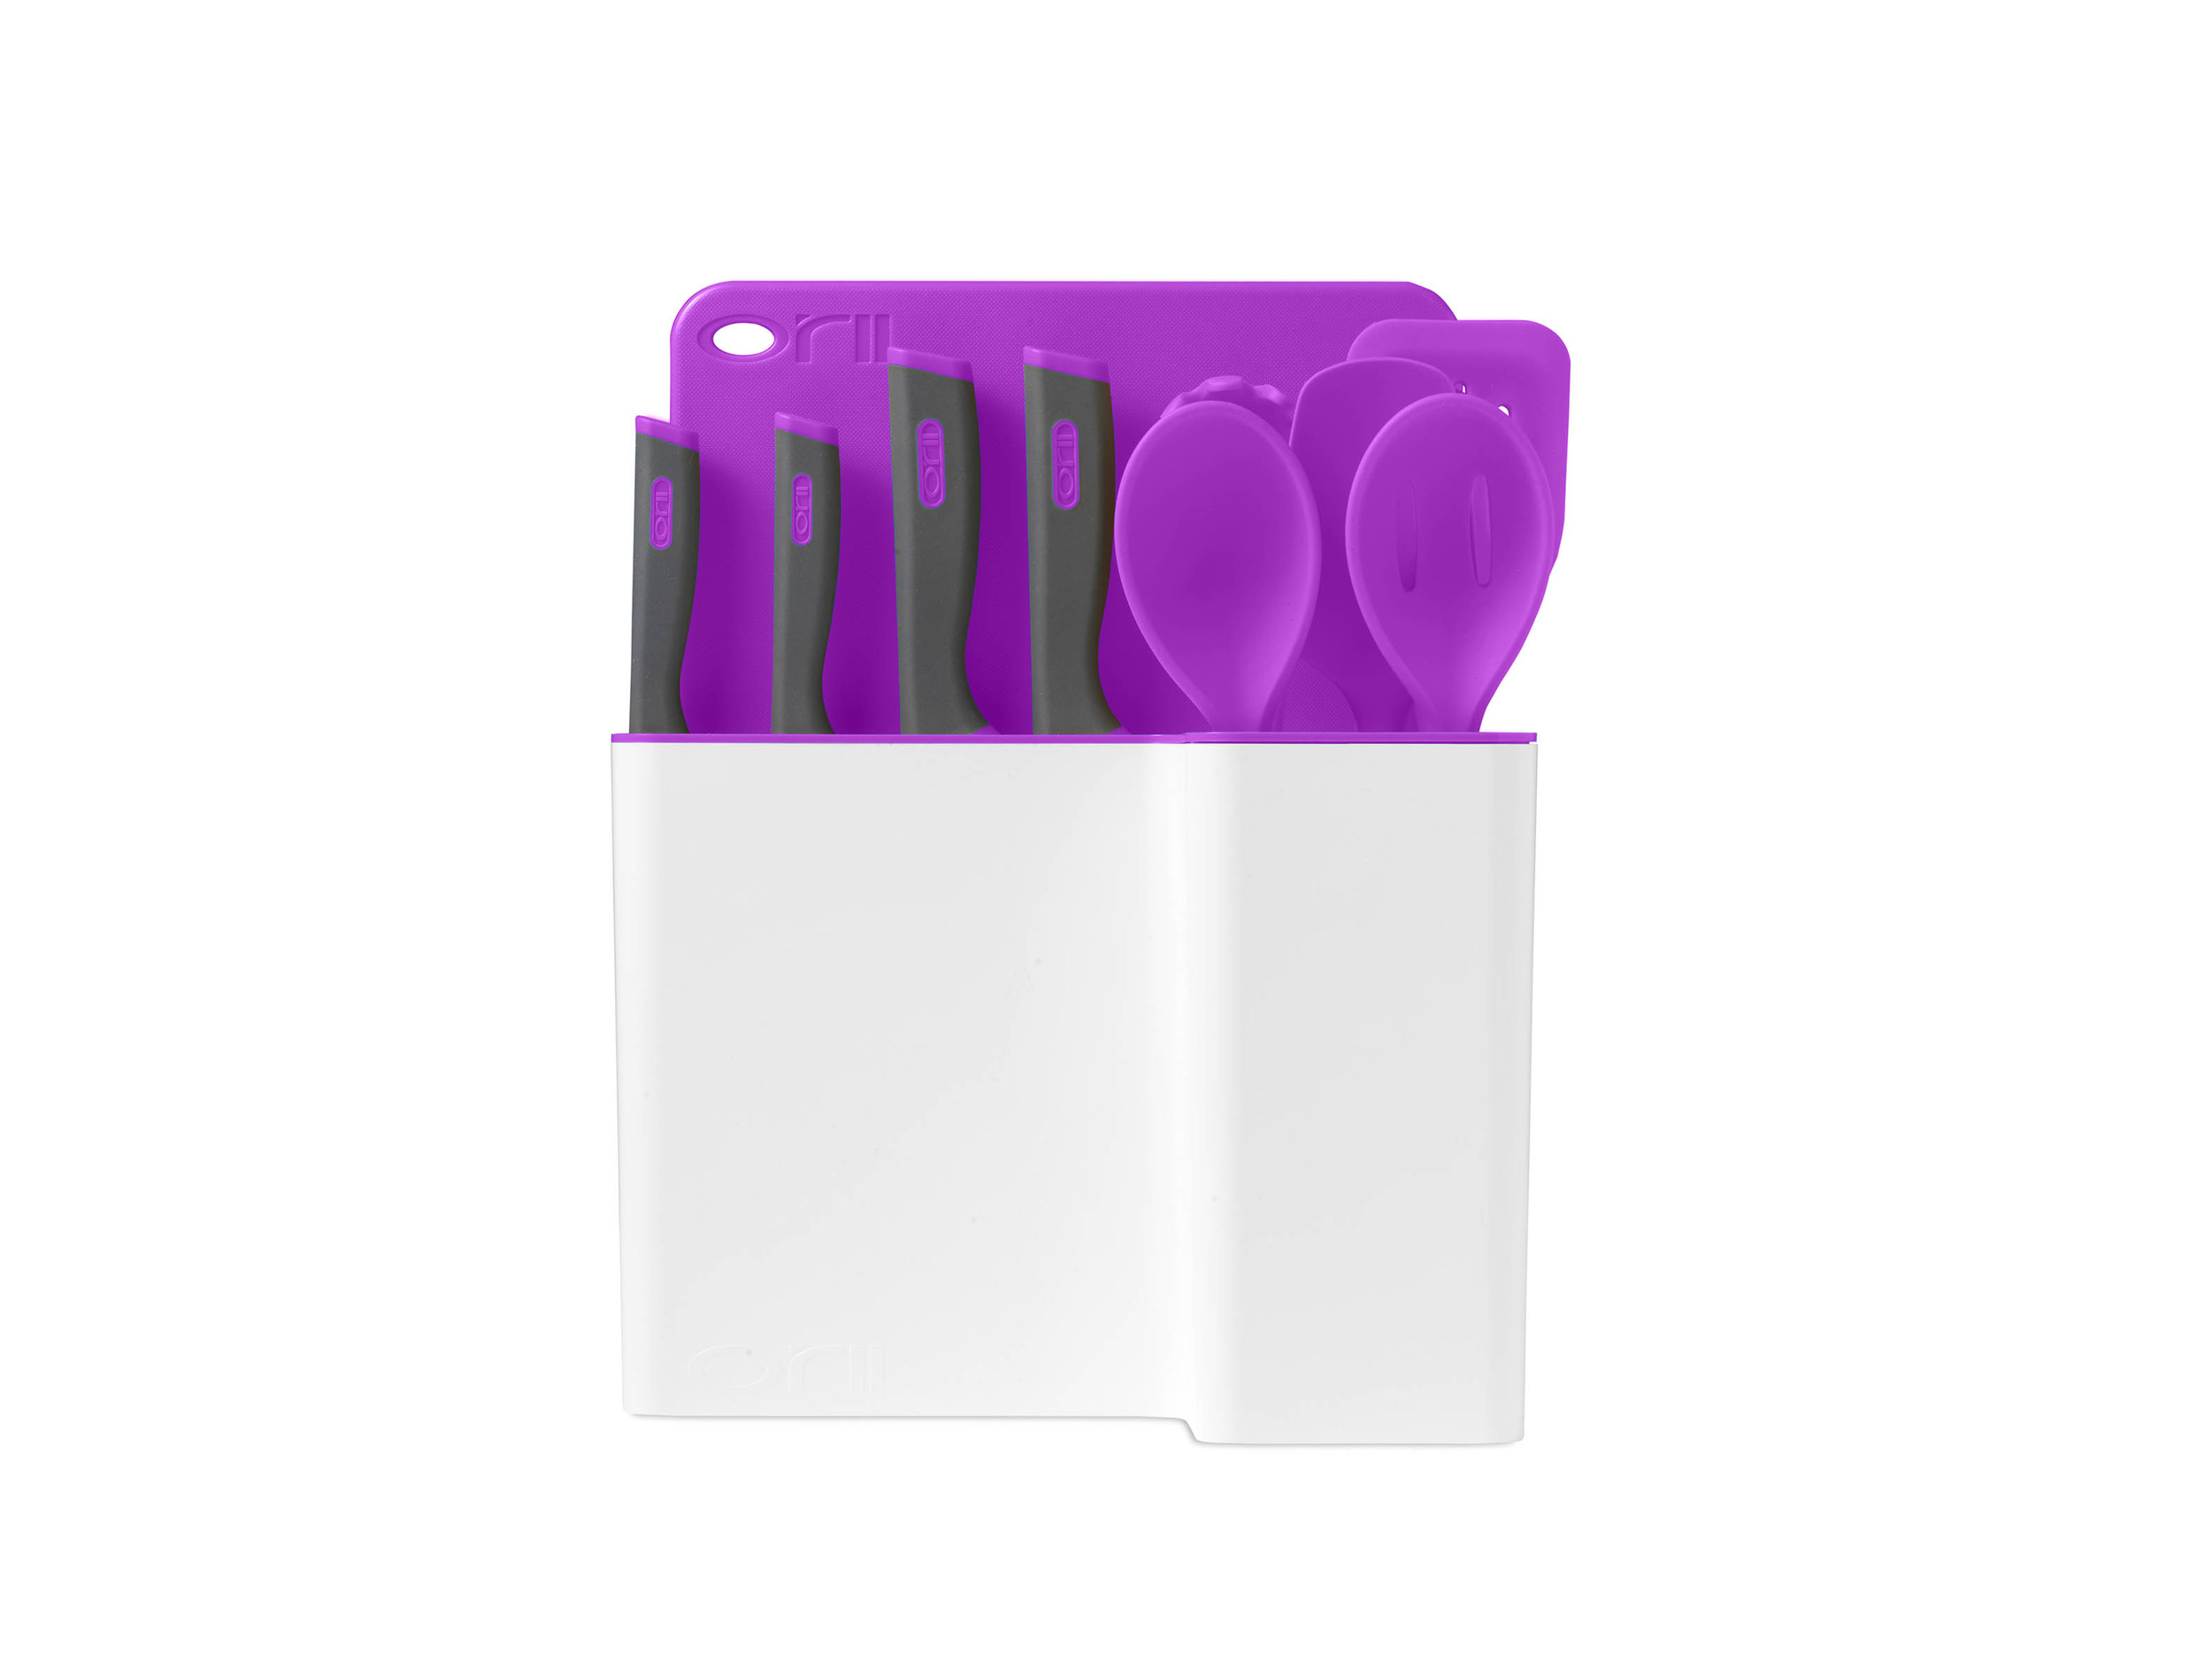 Orii 12PC MONO KITCHEN ORGANIZATION SET - PURPLE SHIRAZ